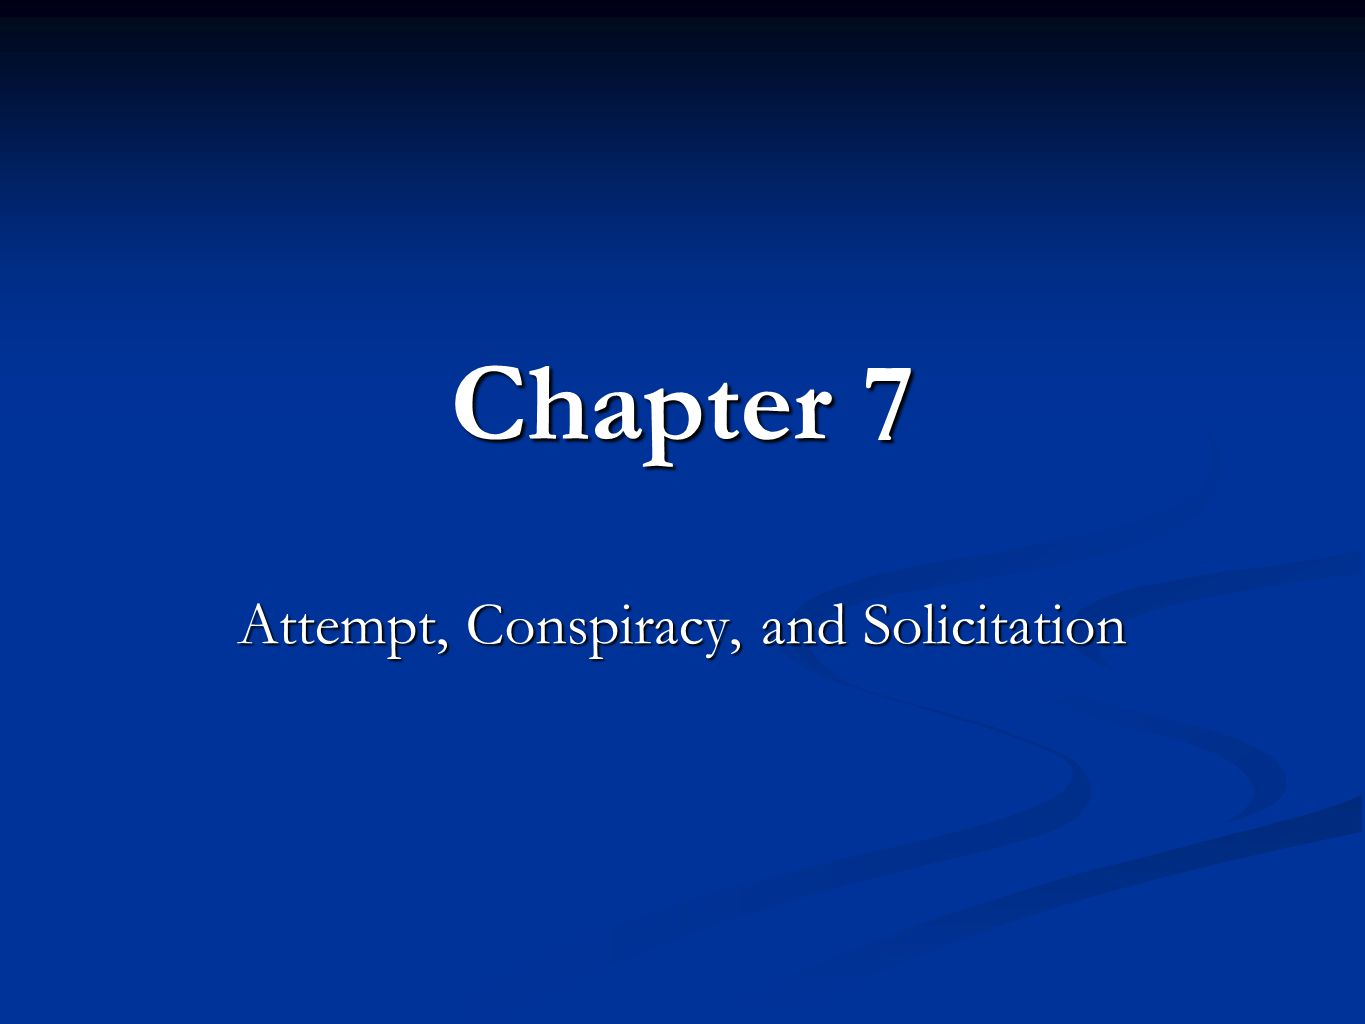 Lippman, Contemporary Criminal Law, Second Edition Conspiracy An agreement between two or more persons to commit a criminal act An agreement between two or more persons to commit a criminal act Intervention protects society by arresting individuals before they commit a crime.